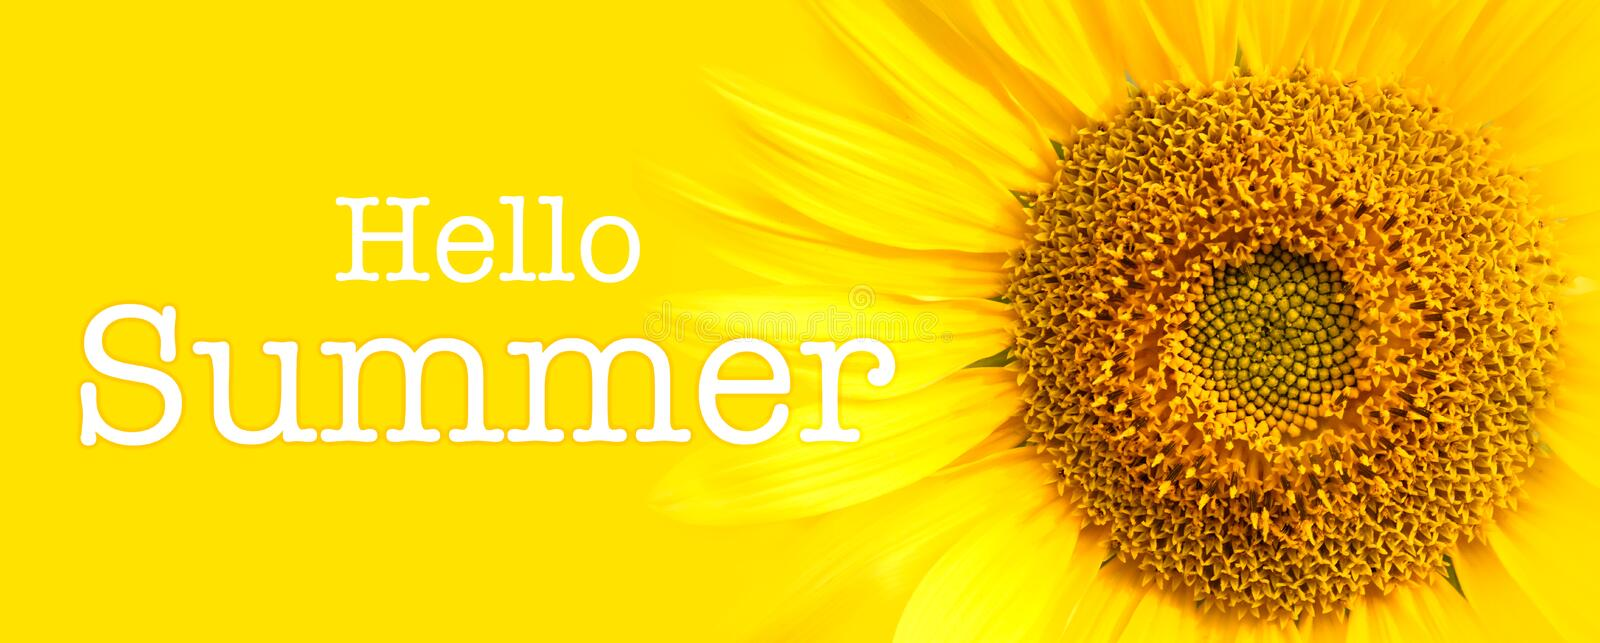 Hello Summer text and sunflower close-up details in yellow banner background stock images